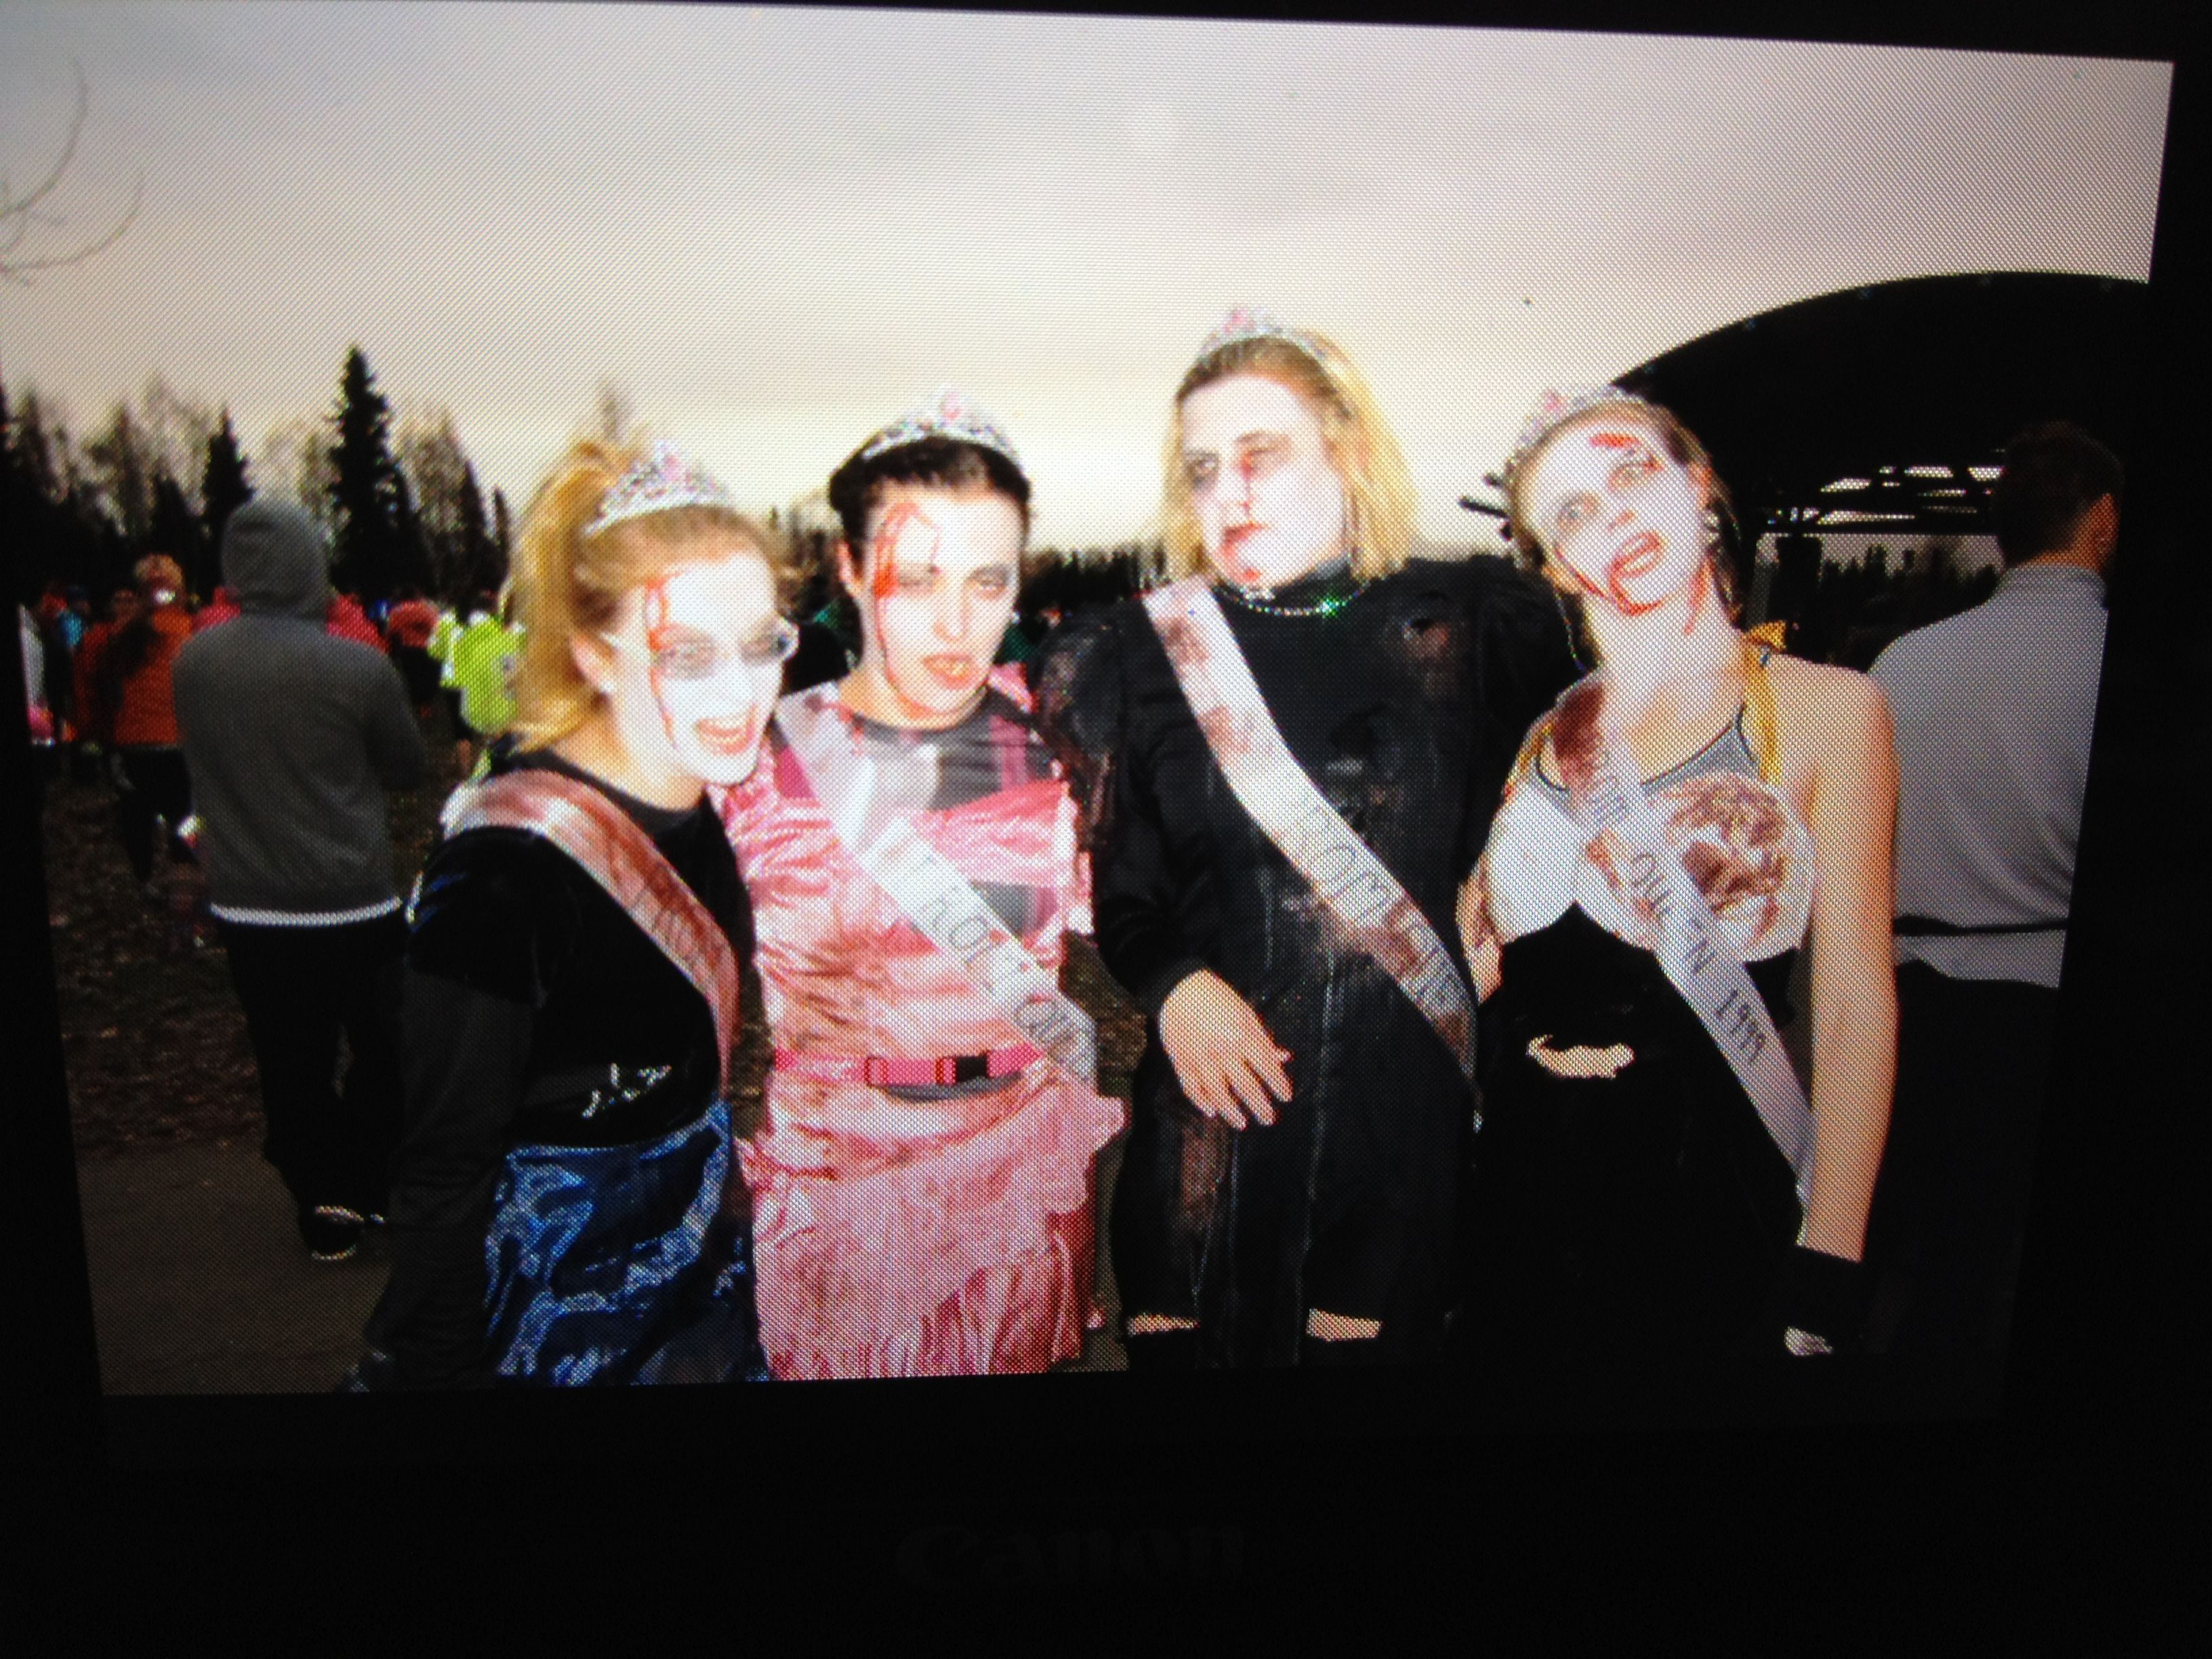 Zombie prom queens ready for the 1/2 marathon!